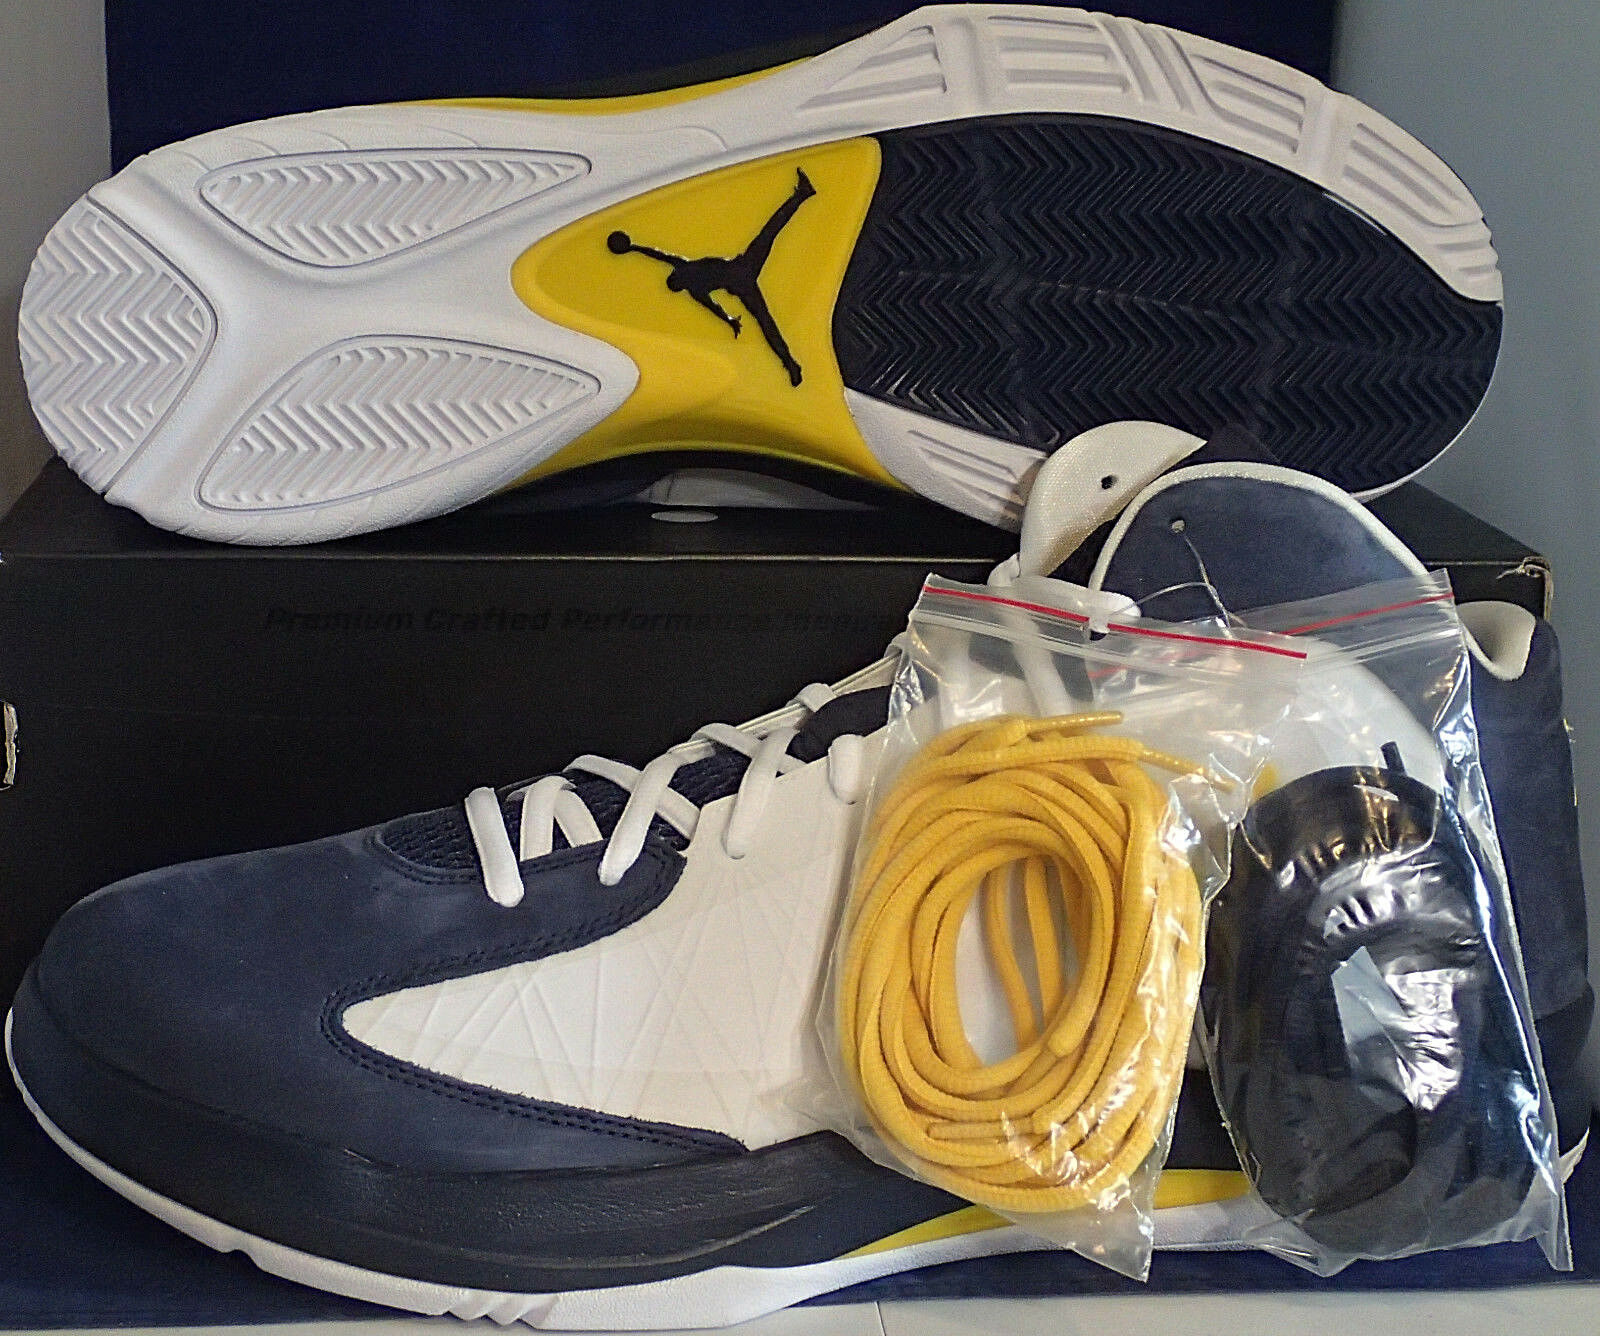 Pe Flight Aero Jordan 2018 University Promo Air Nike Marquette PxFAHA